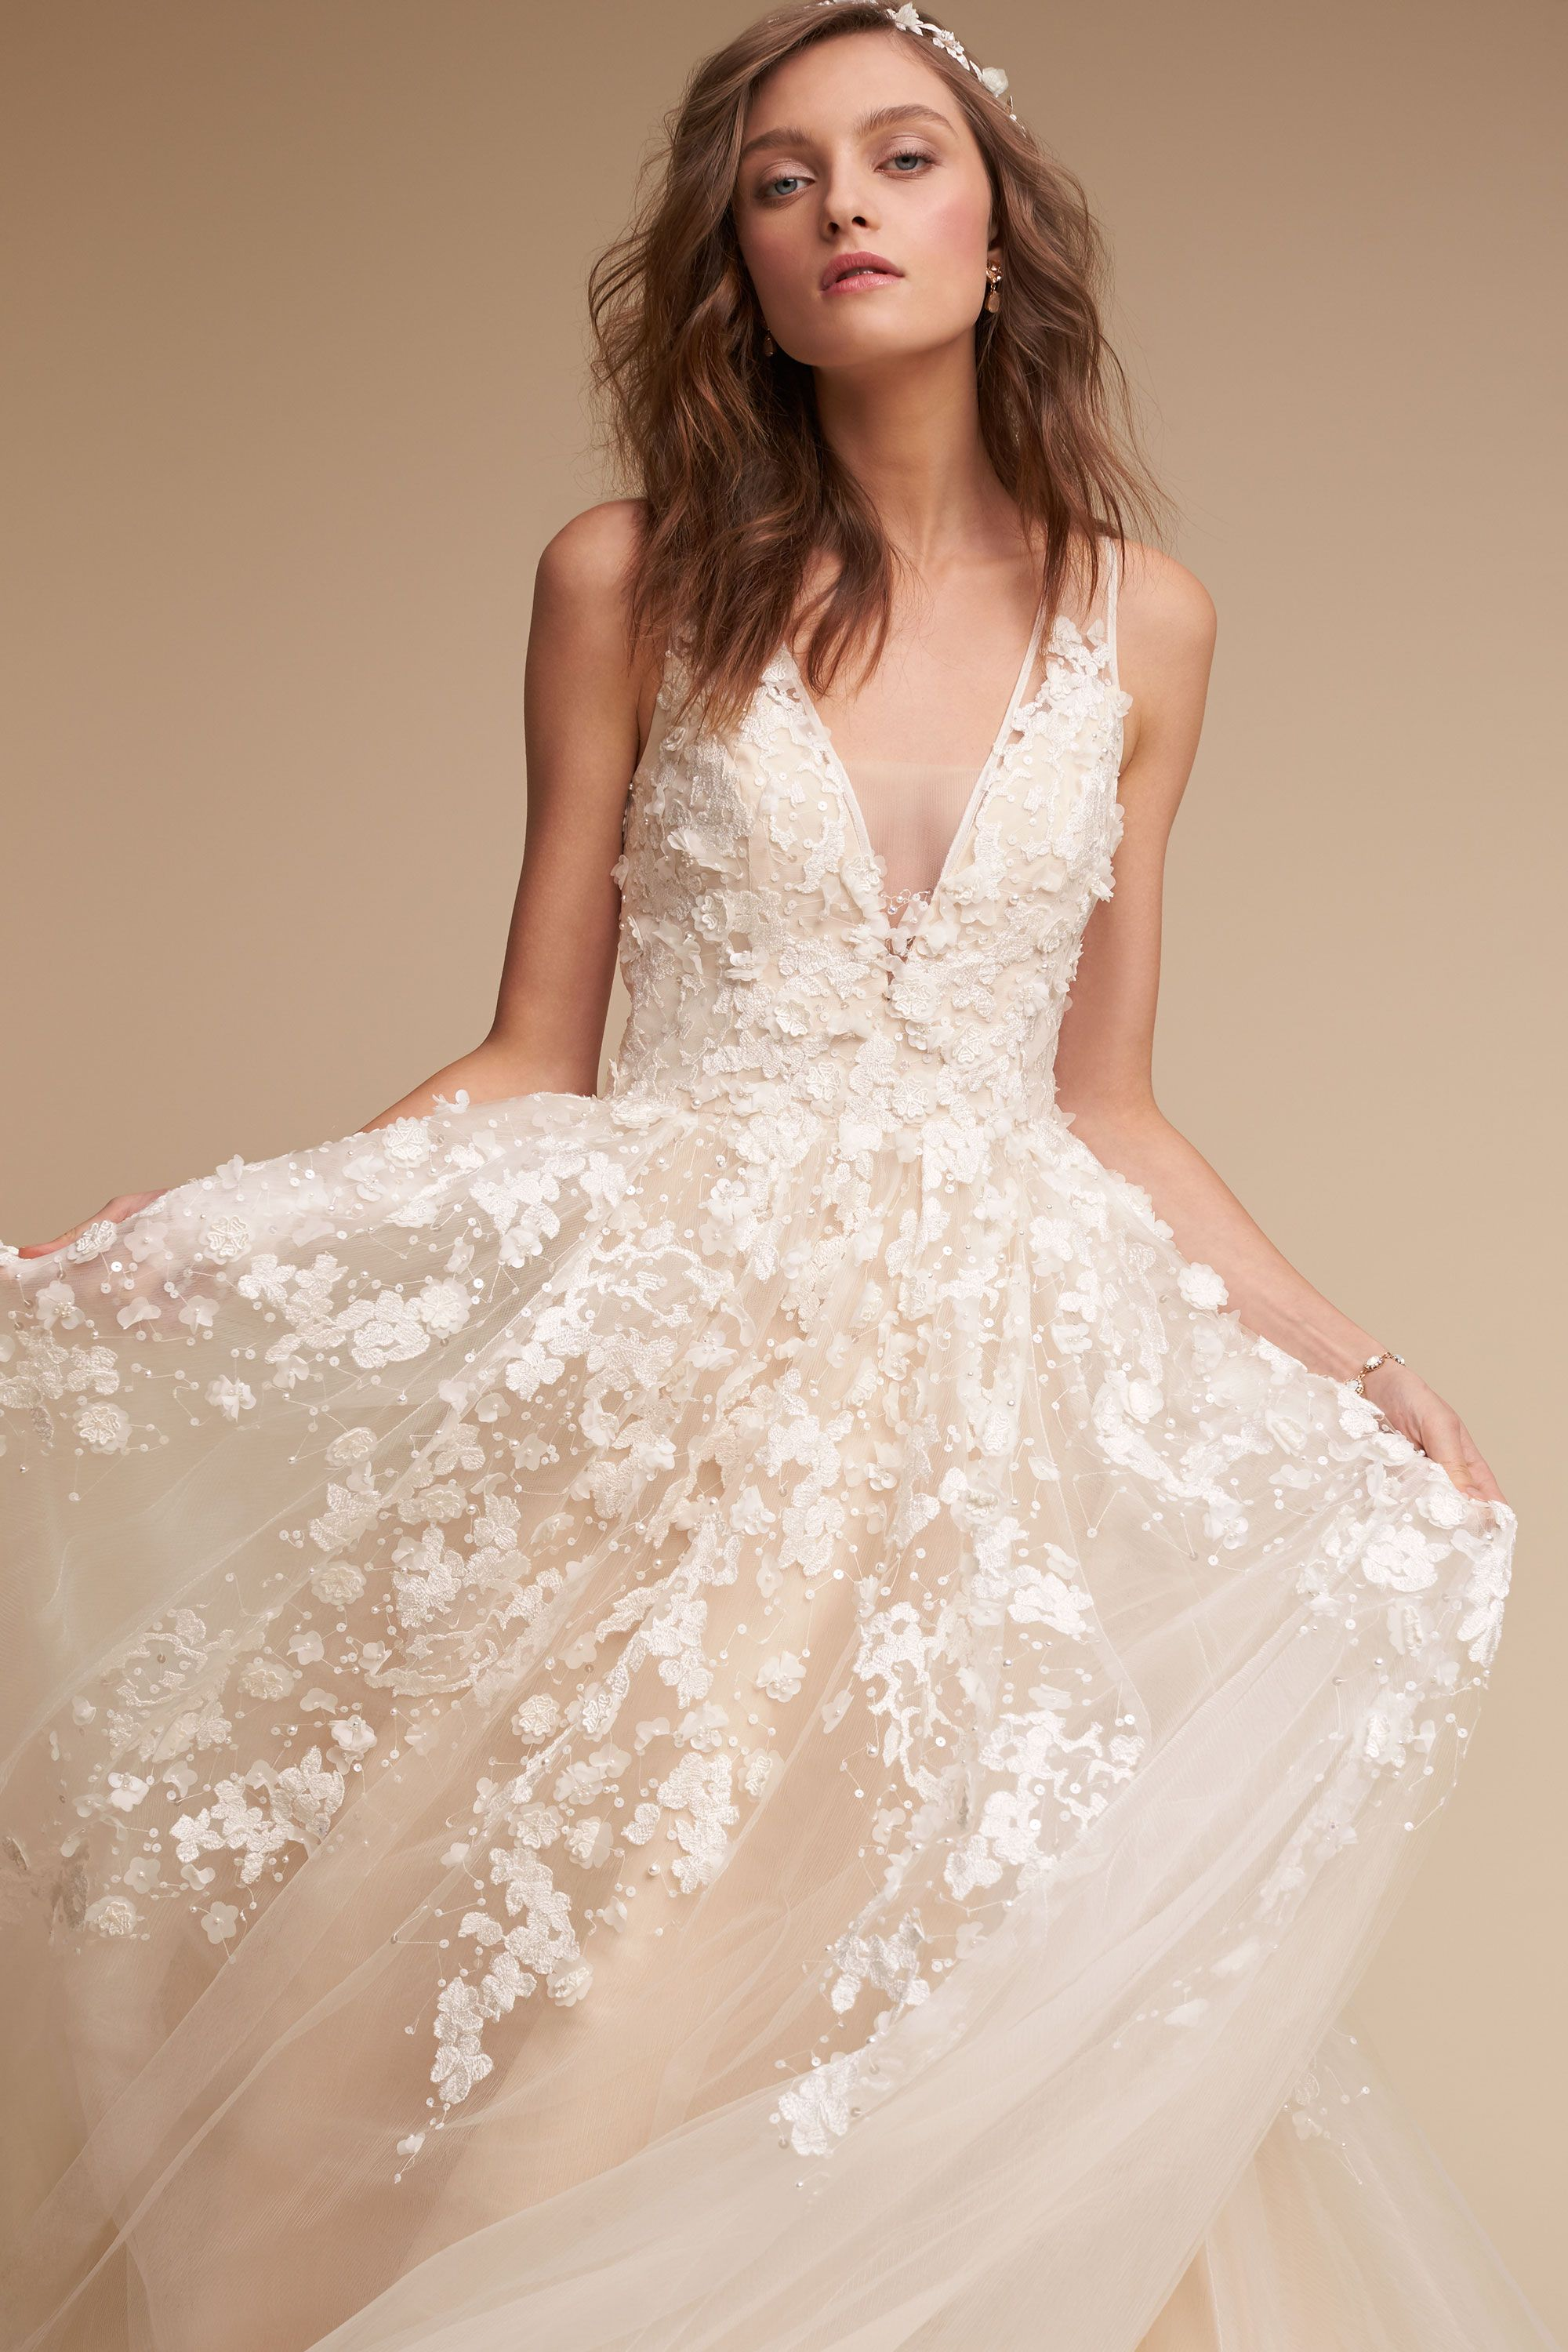 Where to Buy BHLDN Wedding Dresses in Store / Online | Emmaline Bride